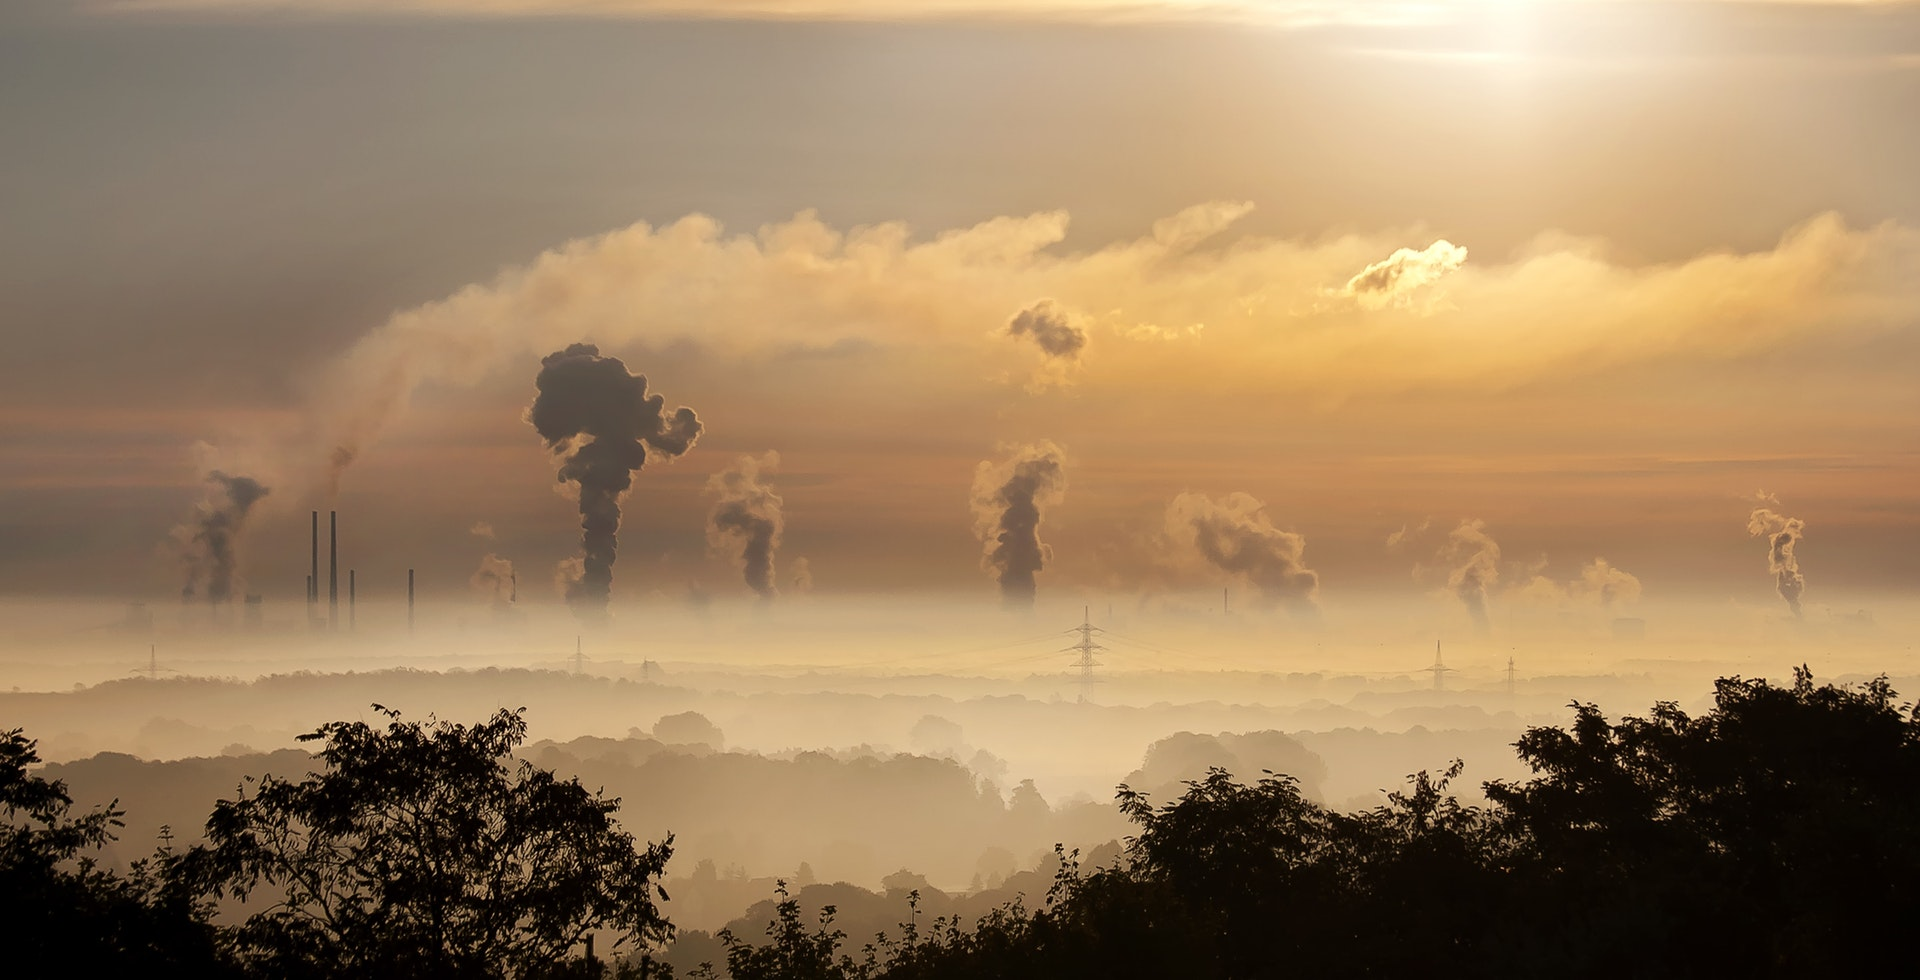 Air pollution caused by industries in sky